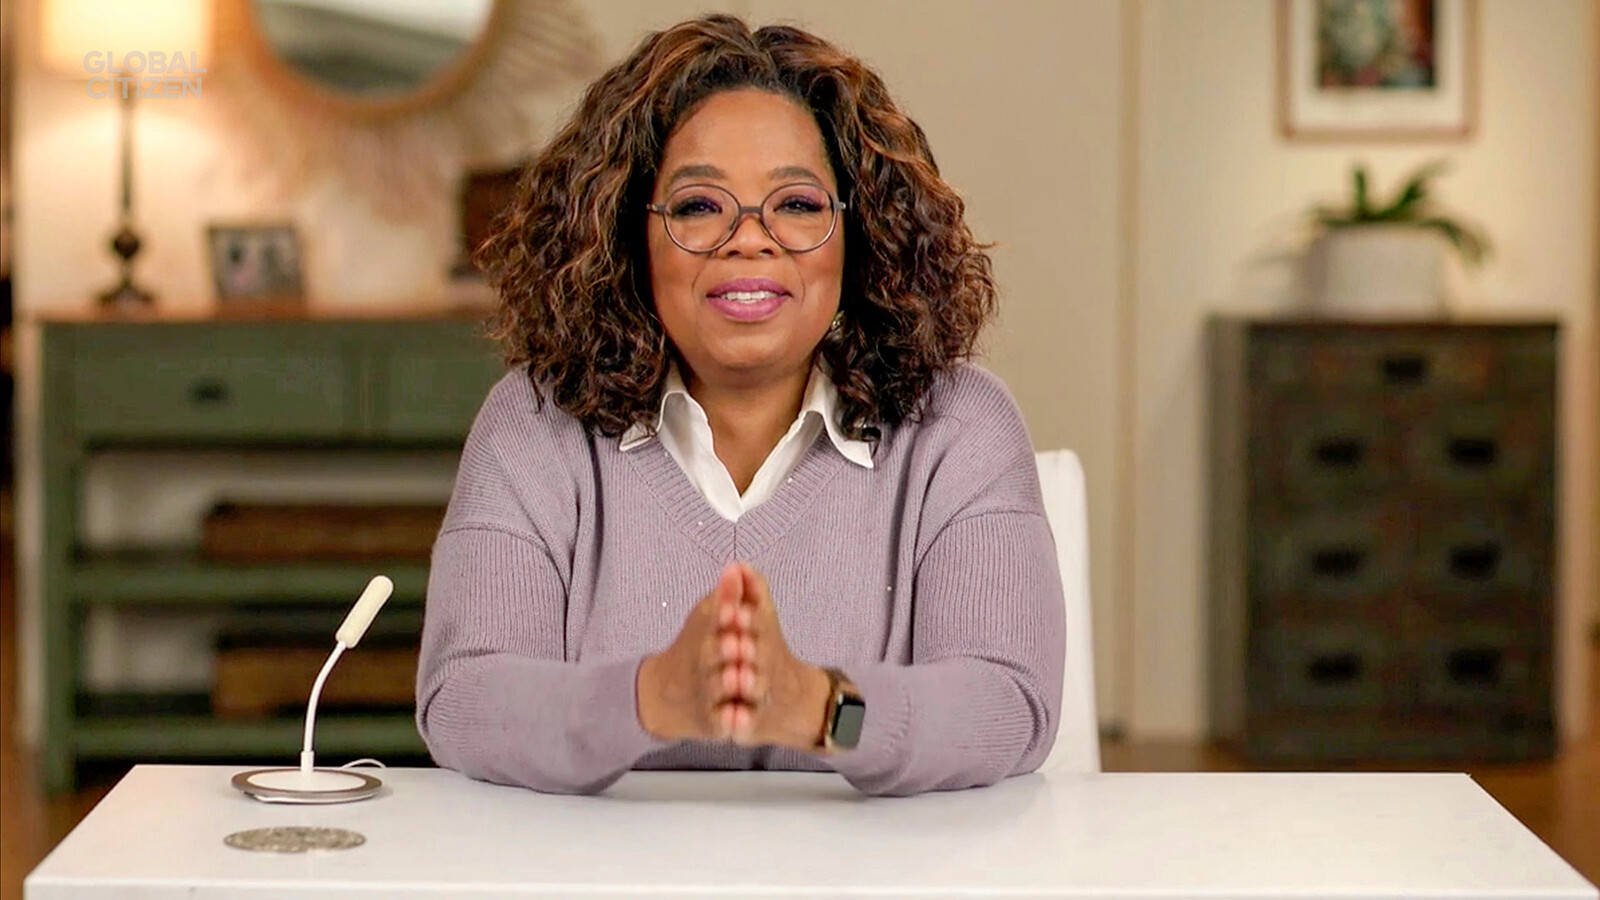 Oprah Winfrey shares her concerns about where we are as a country